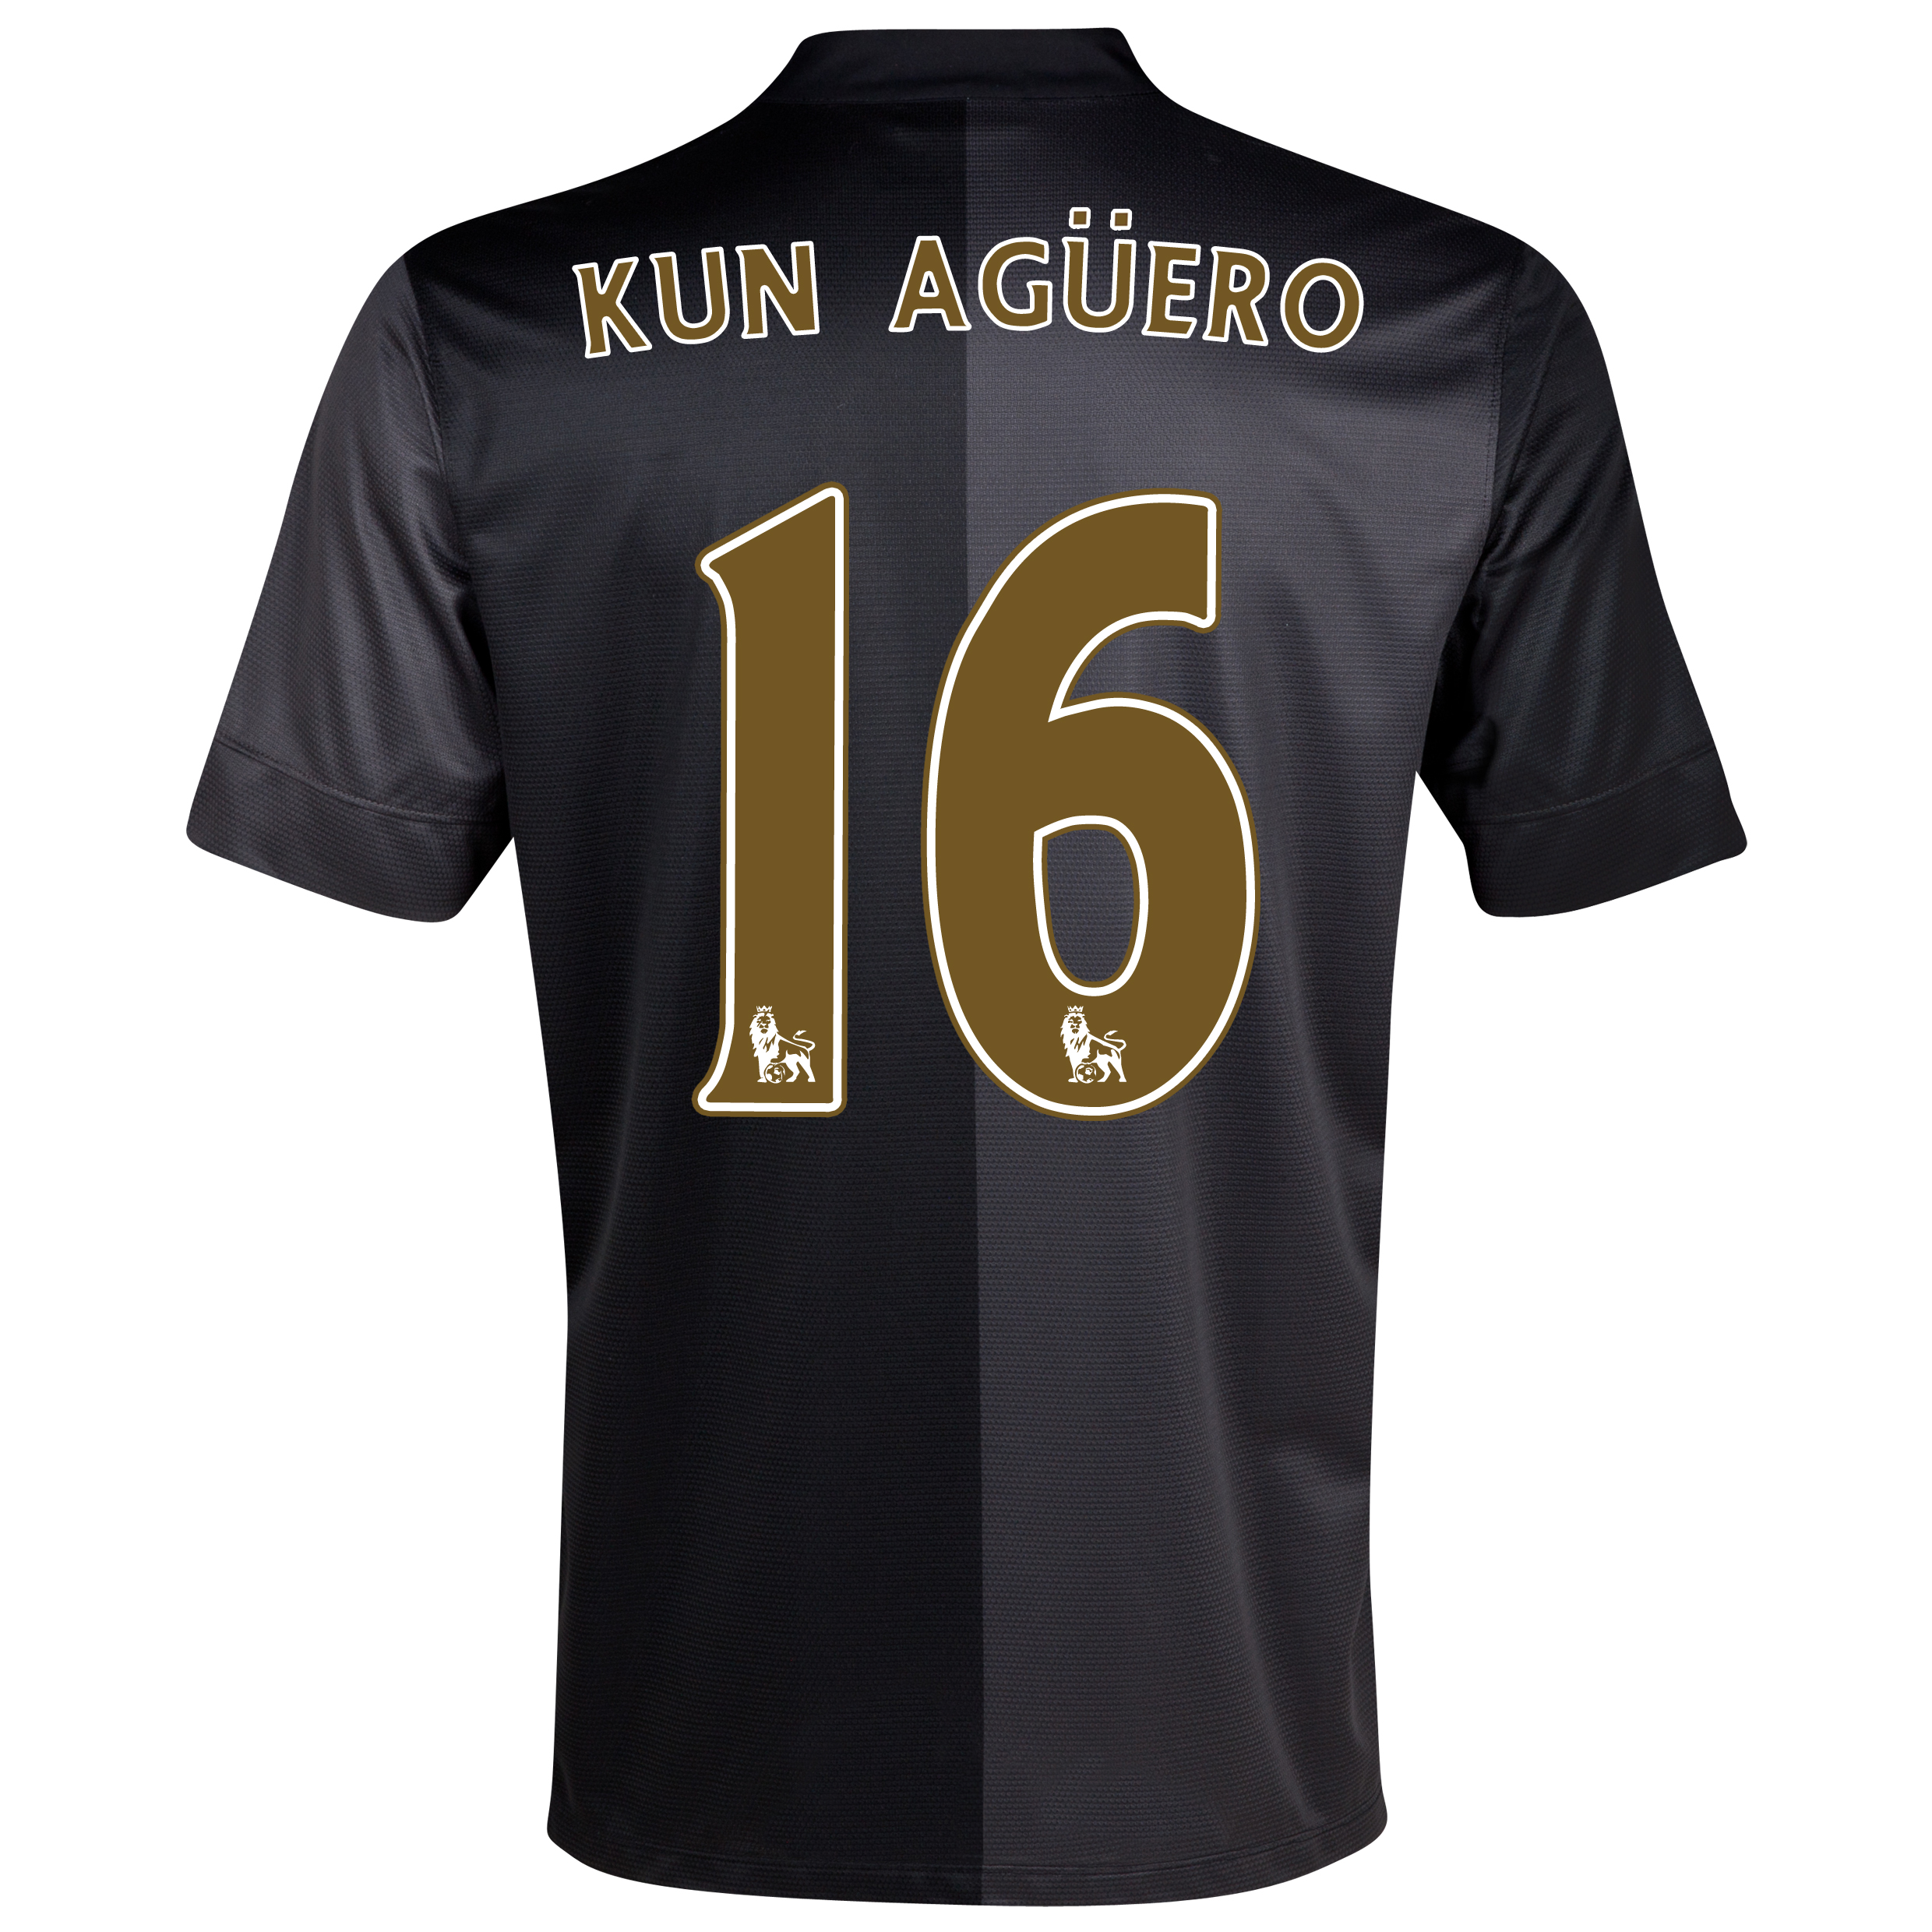 Manchester City Away Shirt 2013/14 - Junior with Kun Agüero  16 printing